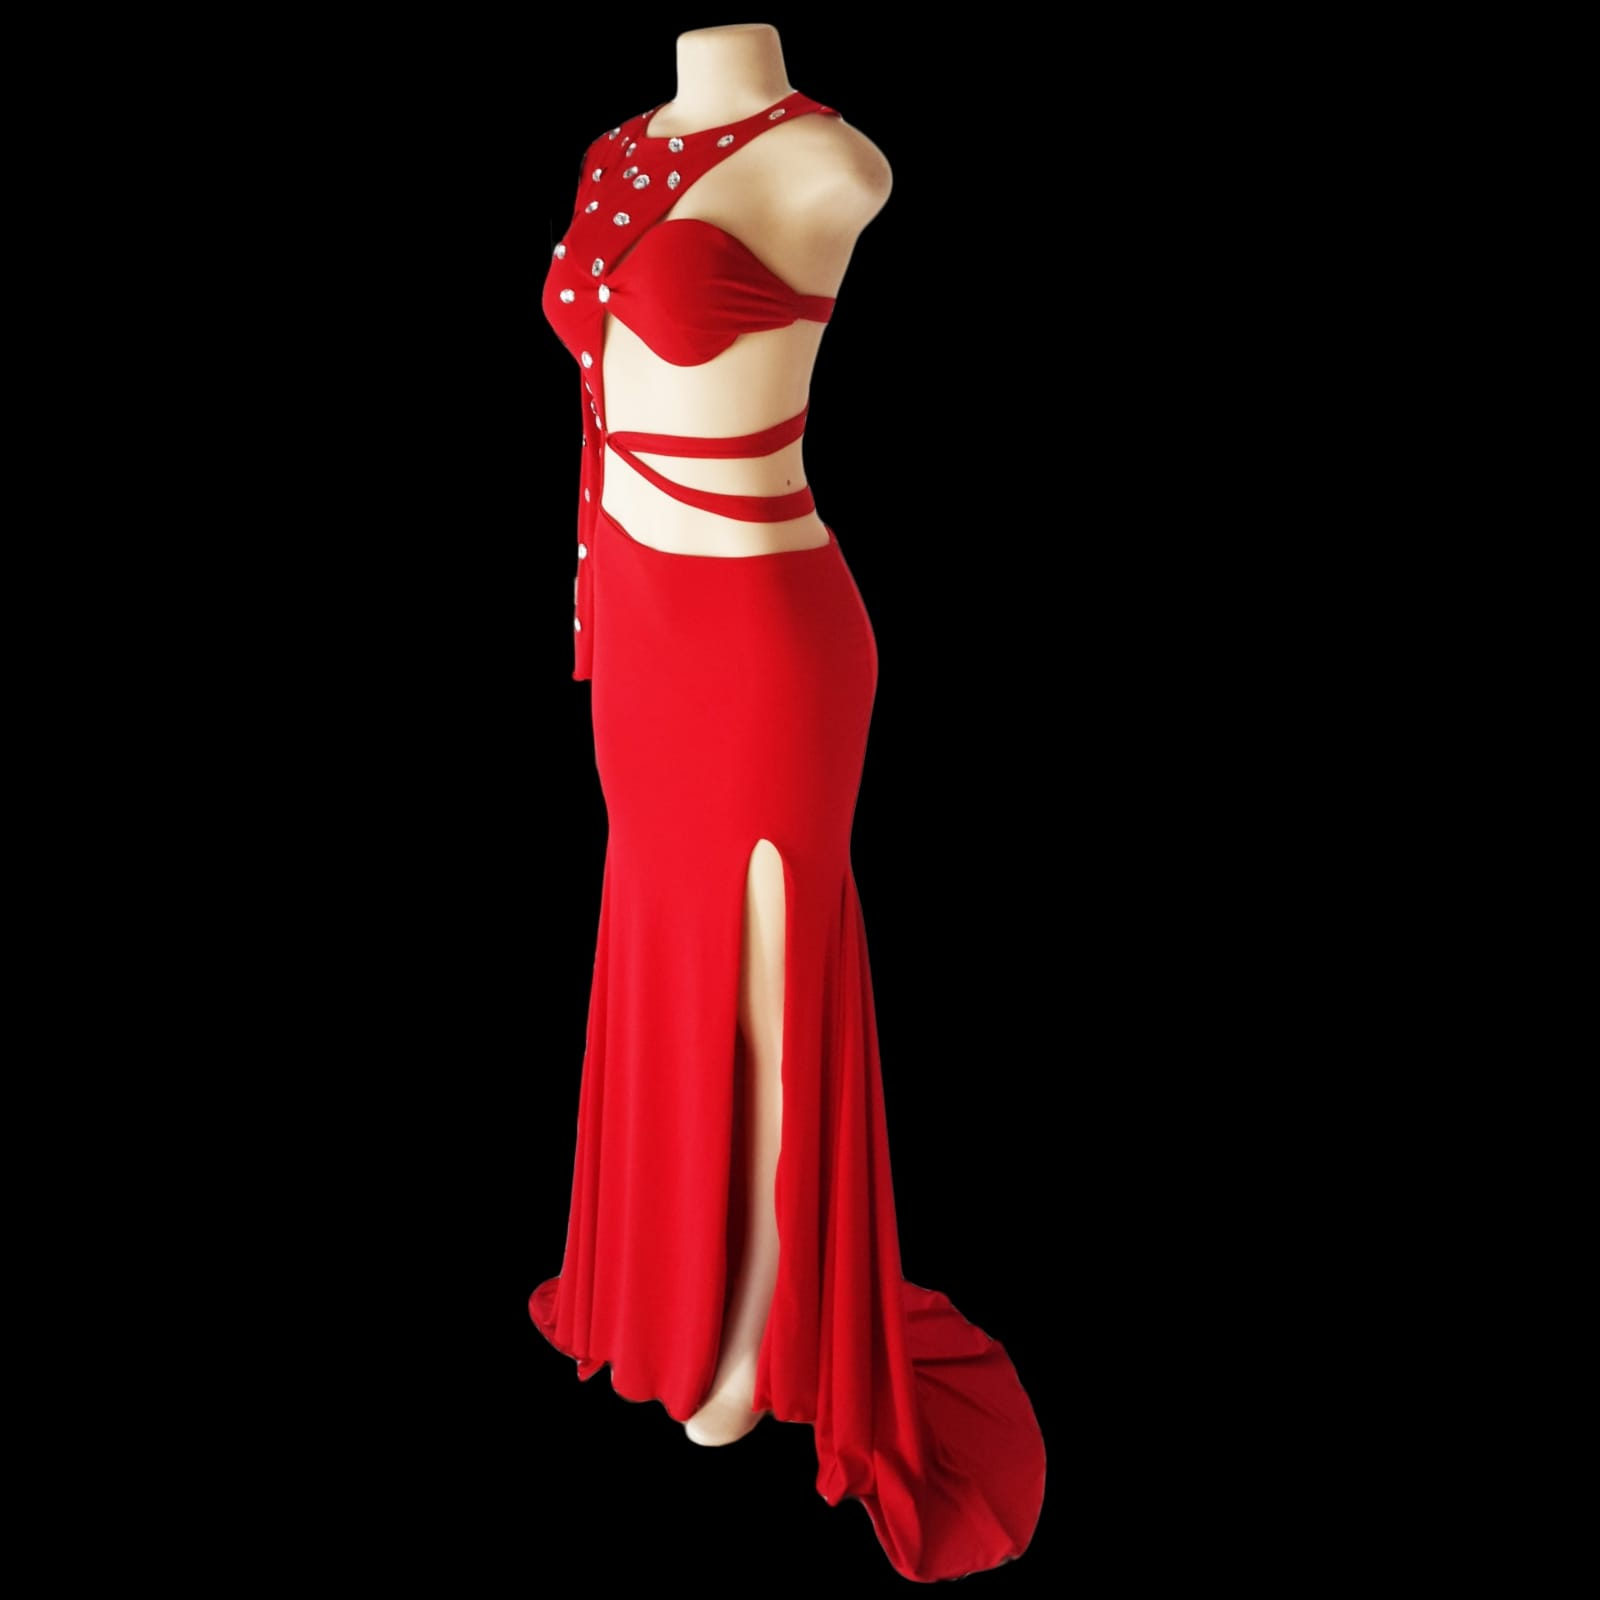 Red sexy different sweet 16 birthday party evening dress 6 red sexy and different sweet 16 evening dress. With a slit and a train and a closed and open side. Single sleeve, the dress is tied from the centre of the back to the centre of the front. Closed side and sleeve with clear silver beads